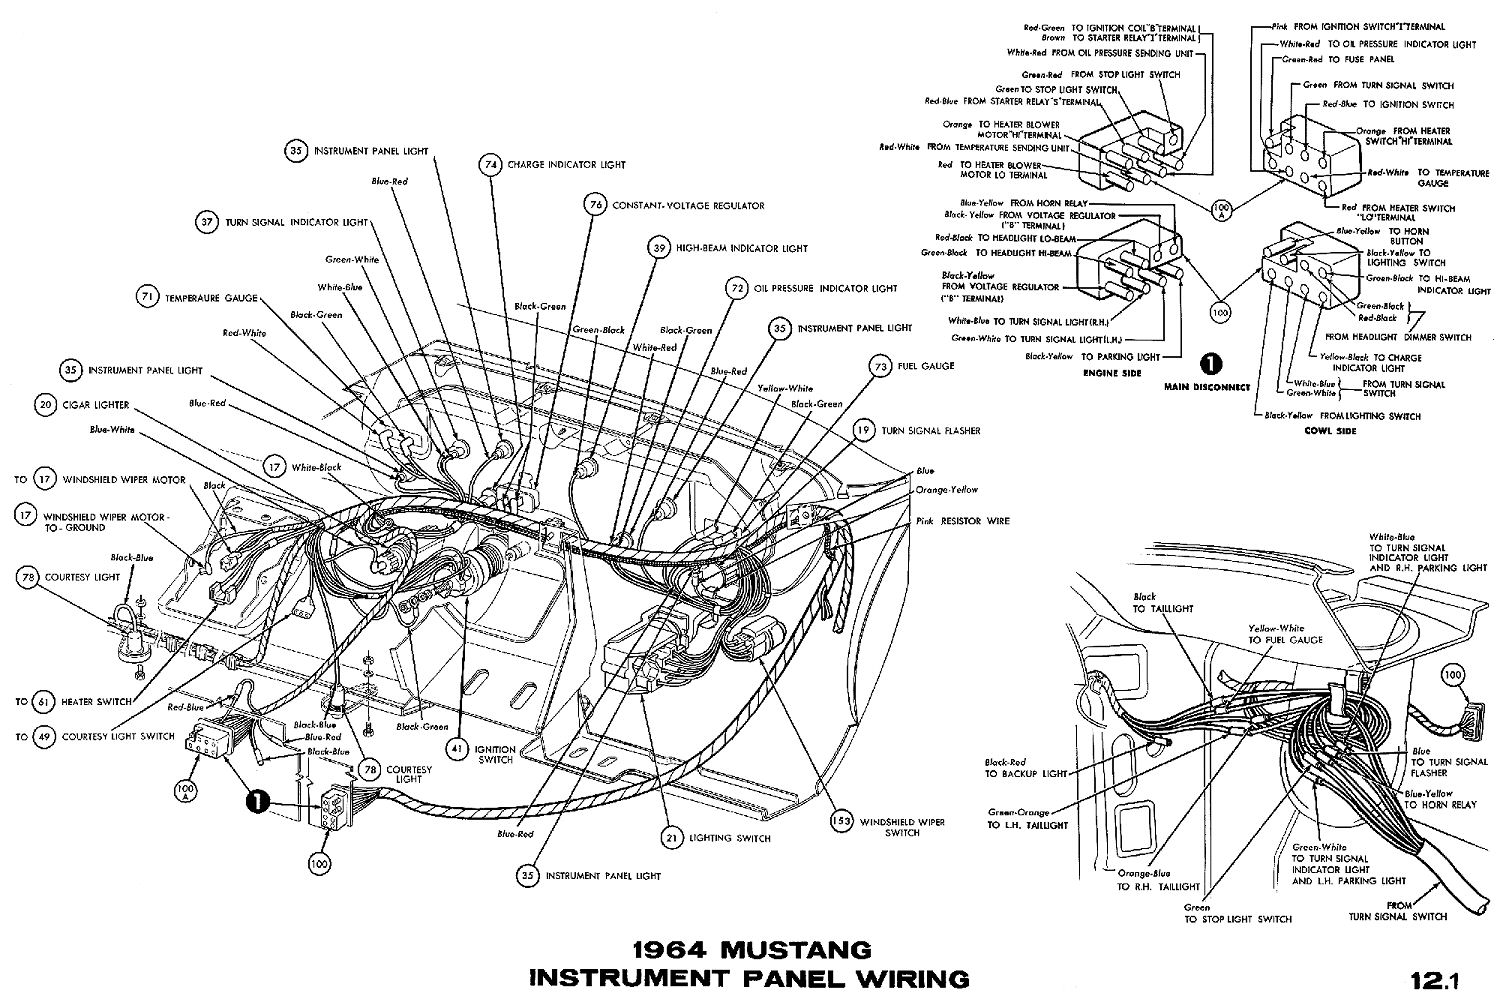 1972 Ford F100 Ke Light Wiring Diagram likewise Documents additionally 48avy Ford Thunderbird Fuse Wires Turn Signals as well 69 Chevelle Ss 396 Parts moreover Tag Vacuum Diagram. on 68 chevelle wiring diagram